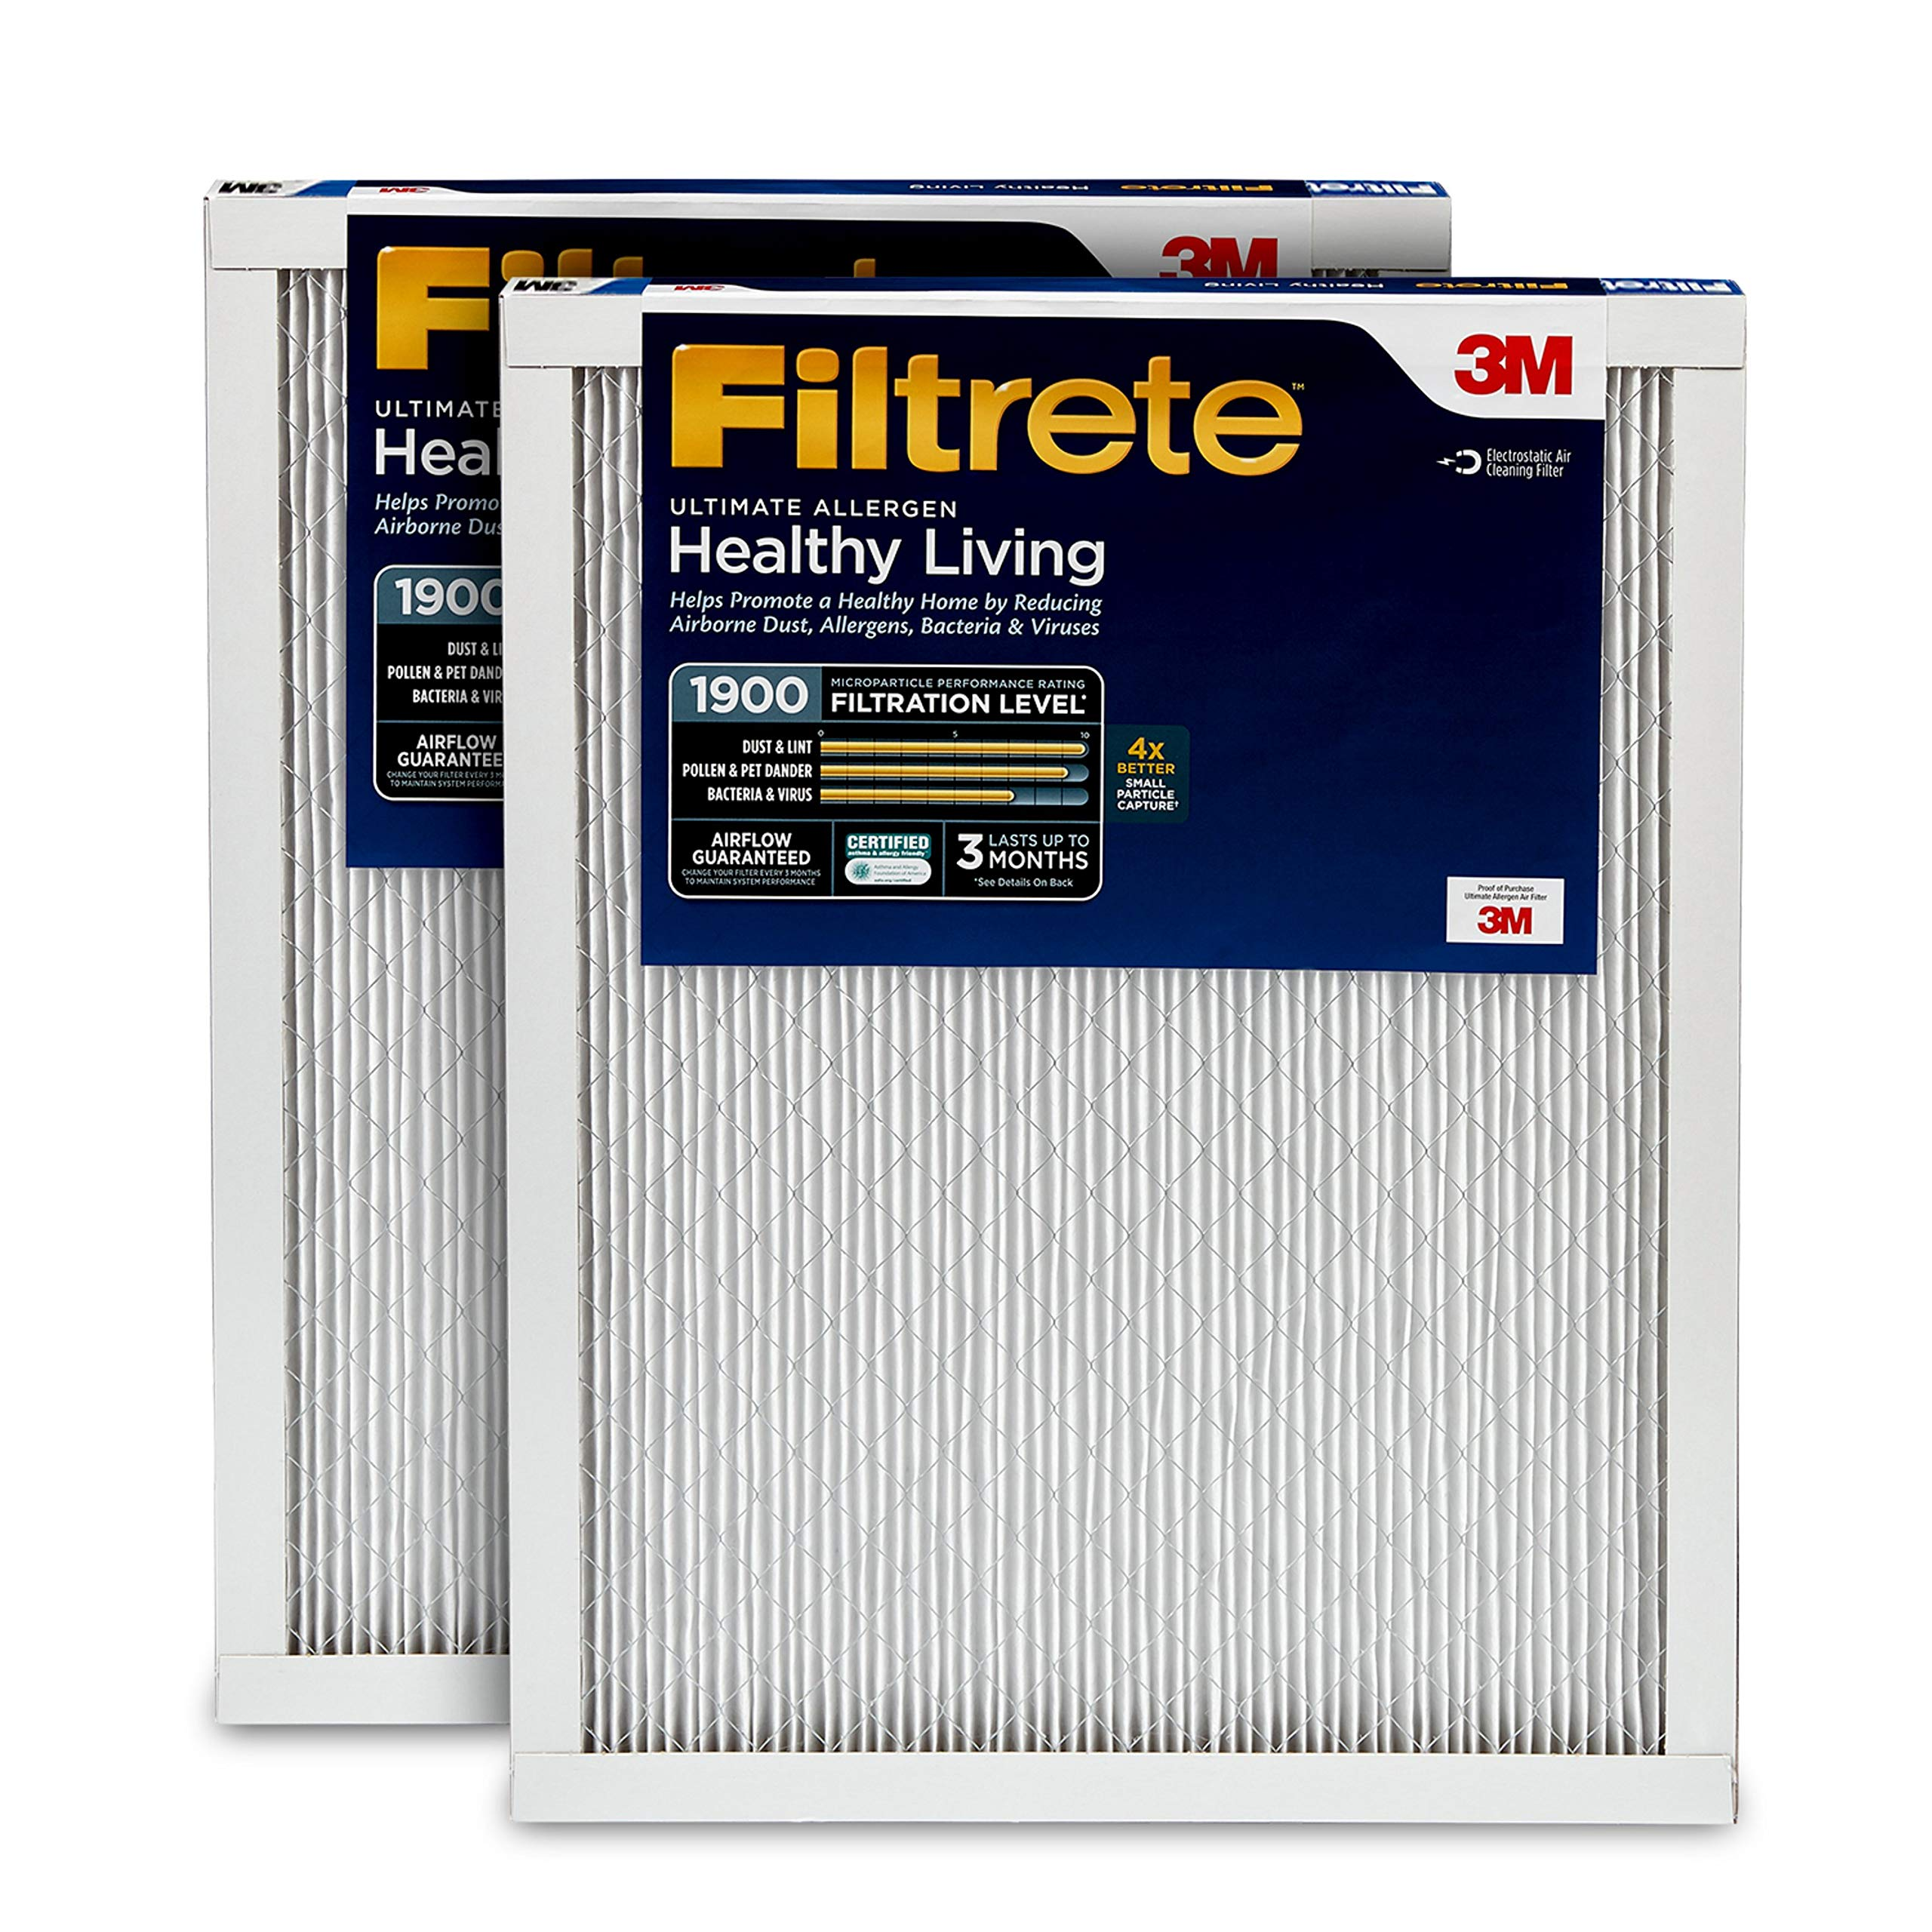 Filtrete 16x25x1, AC Furnace Air Filter, MPR 1900, Healthy Living Ultimate Allergen, 2-Pack by Filtrete